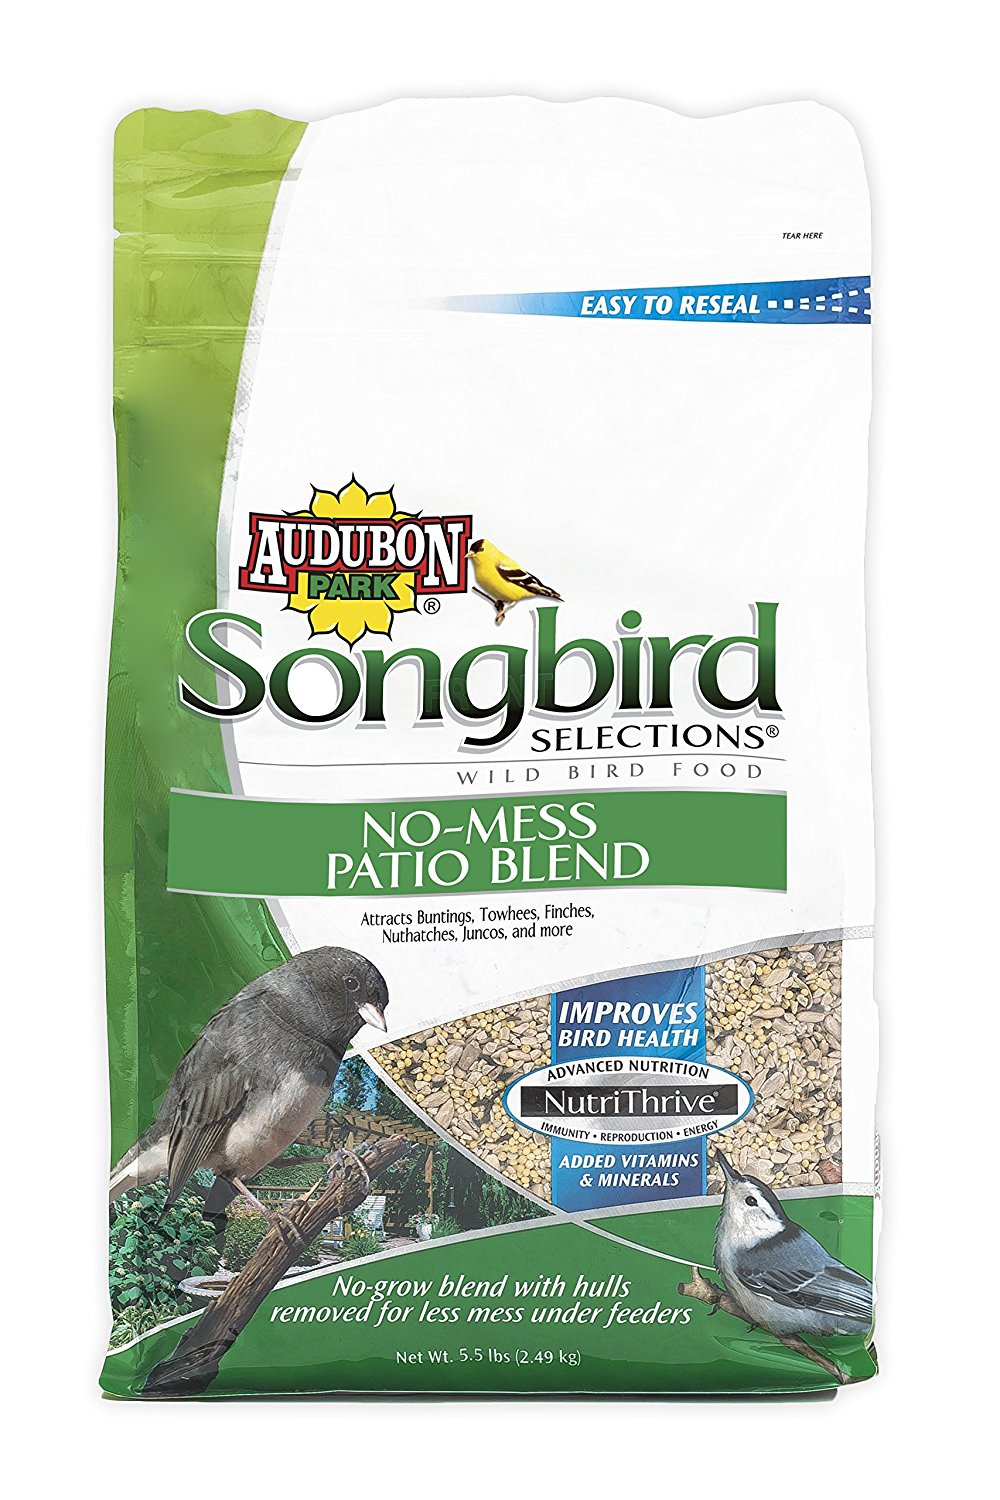 11987 No-Mess Patio Blend Wild Bird Food, 5.5-Pound, No-grow blend for less mess under feeders perfect for... by